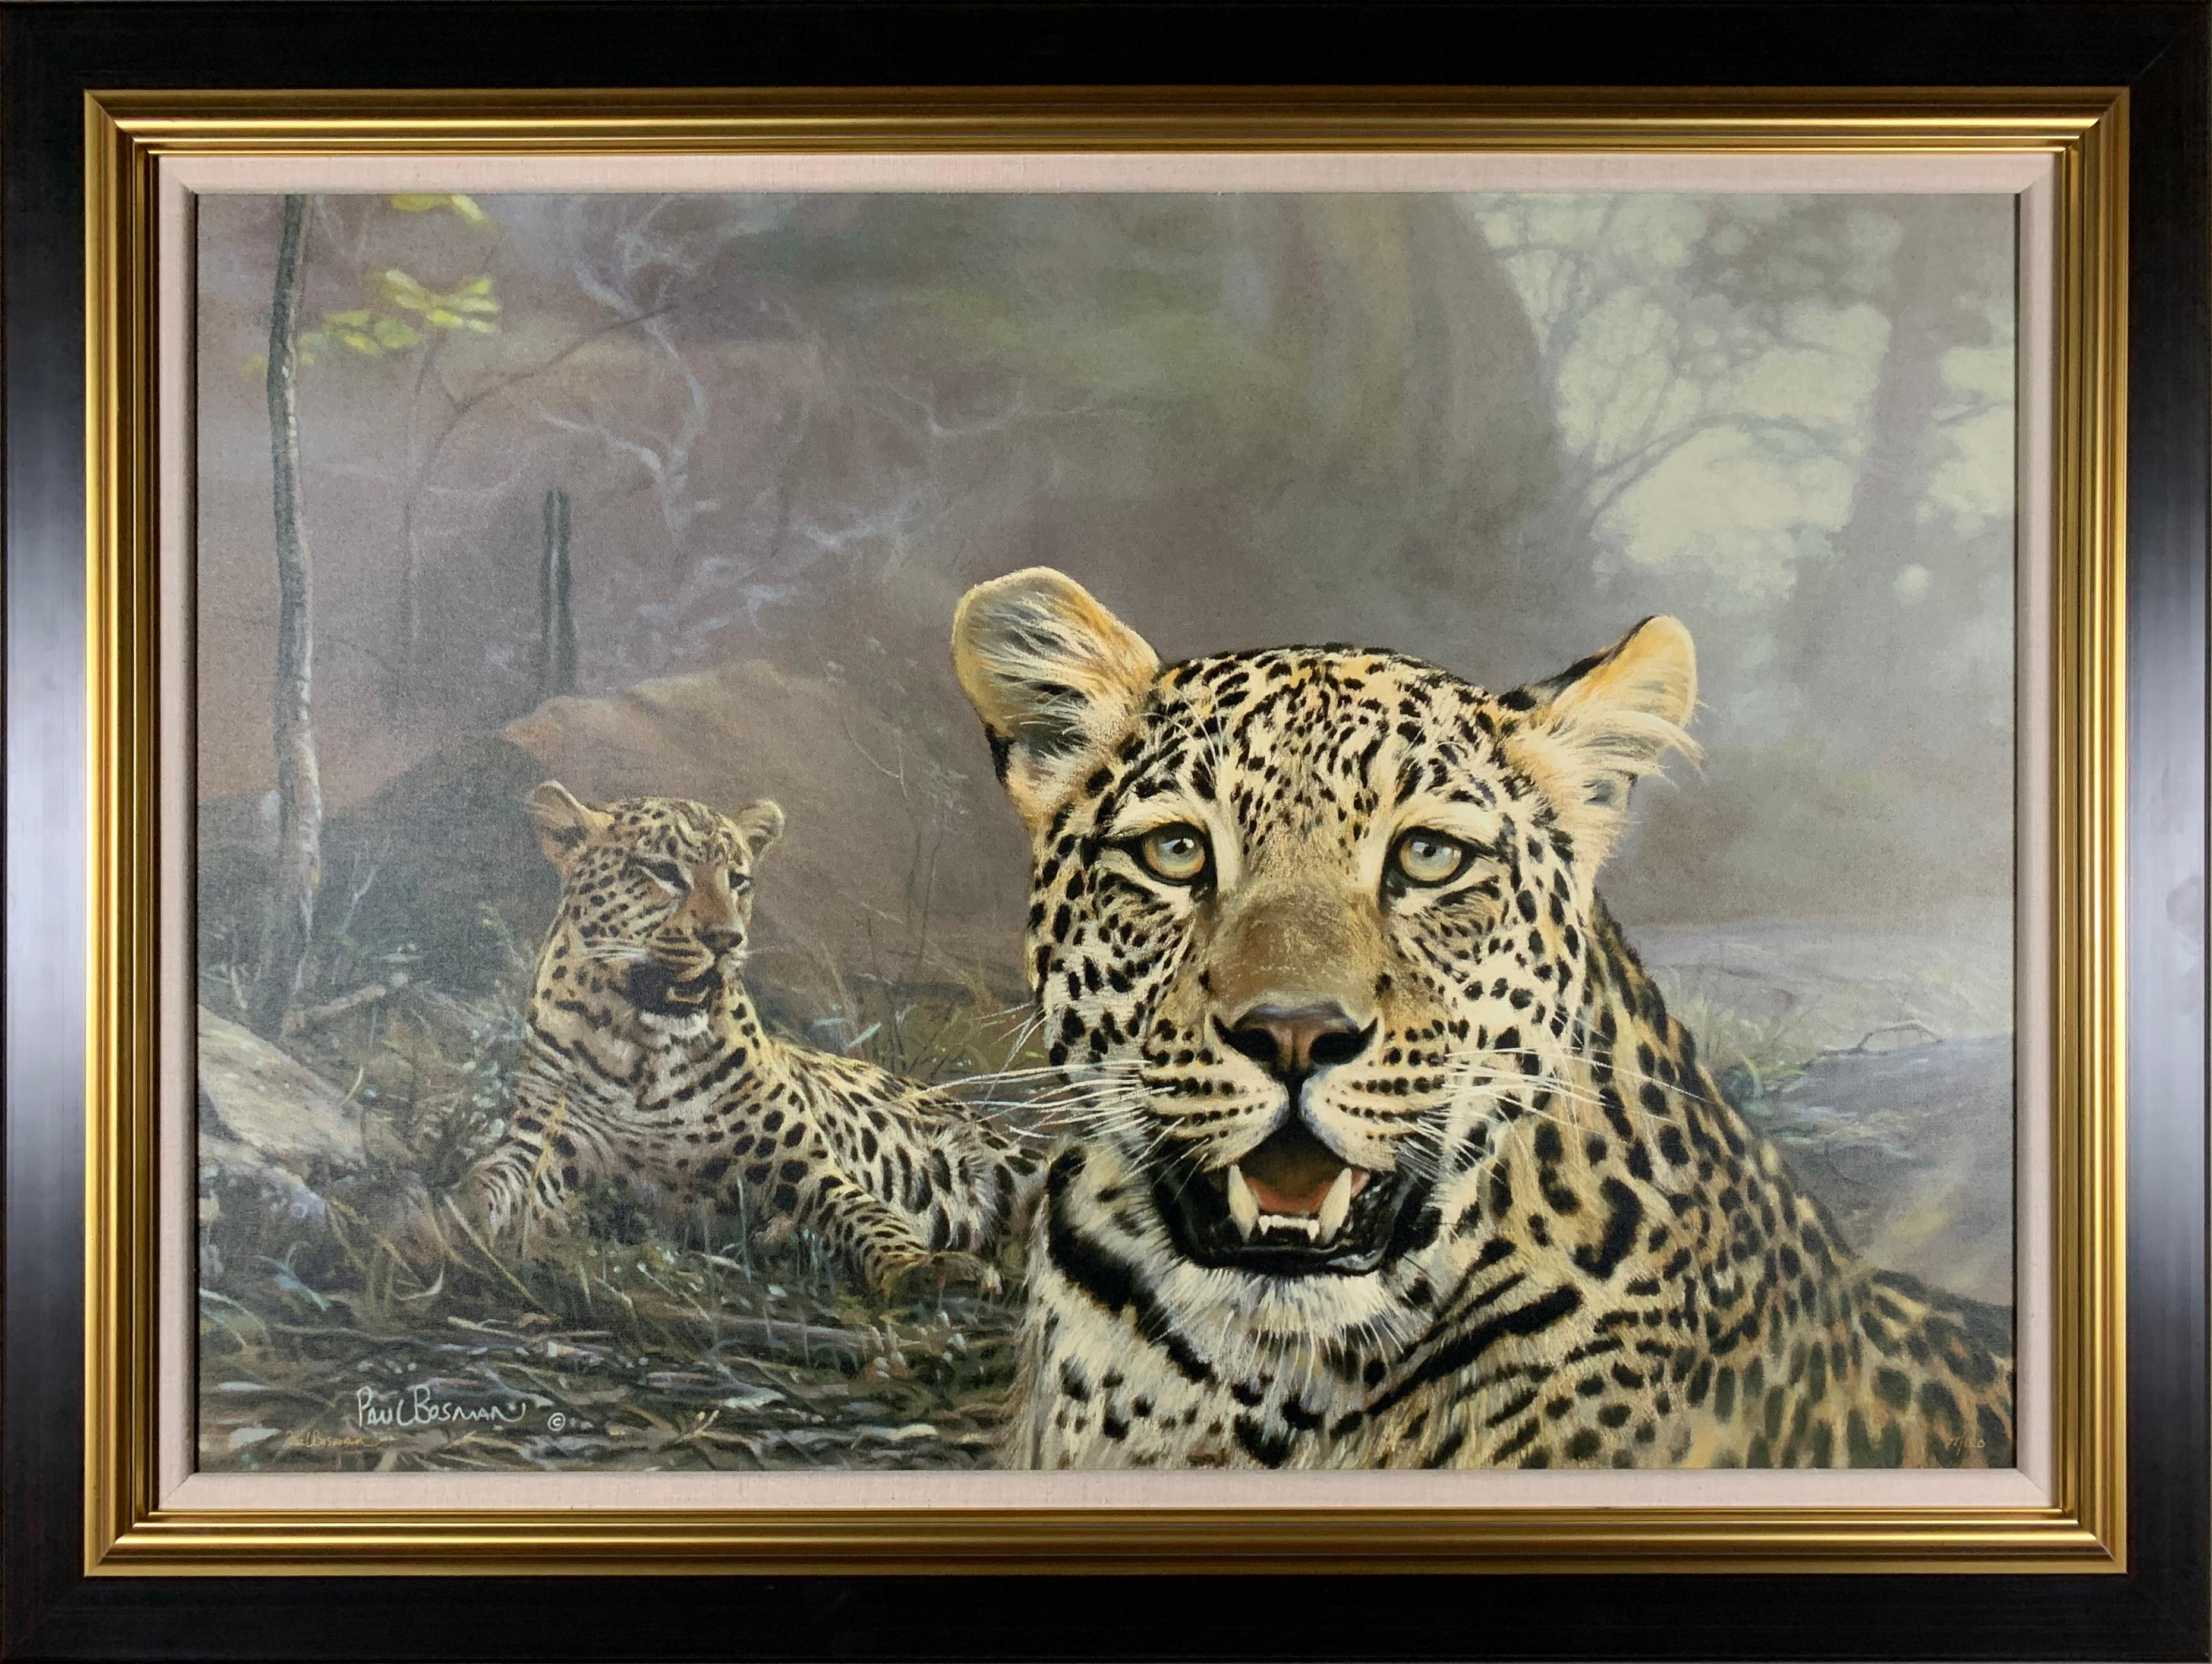 """Paul Bosman's """"Secluded Courtship"""" Limited Edition Canvas"""